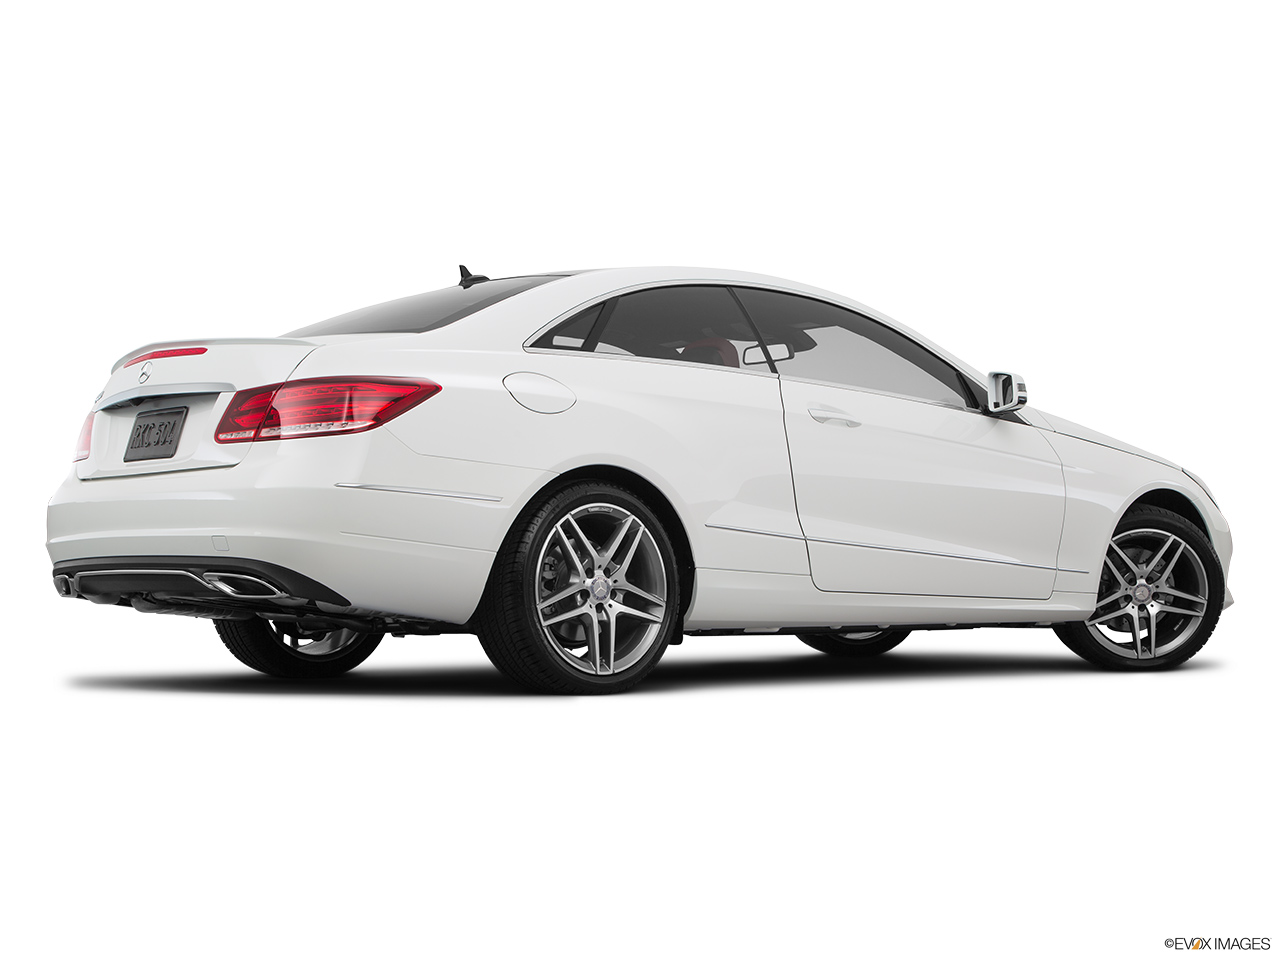 Car pictures list for mercedes benz e class coupe 2016 e for Mercedes benz coupes list